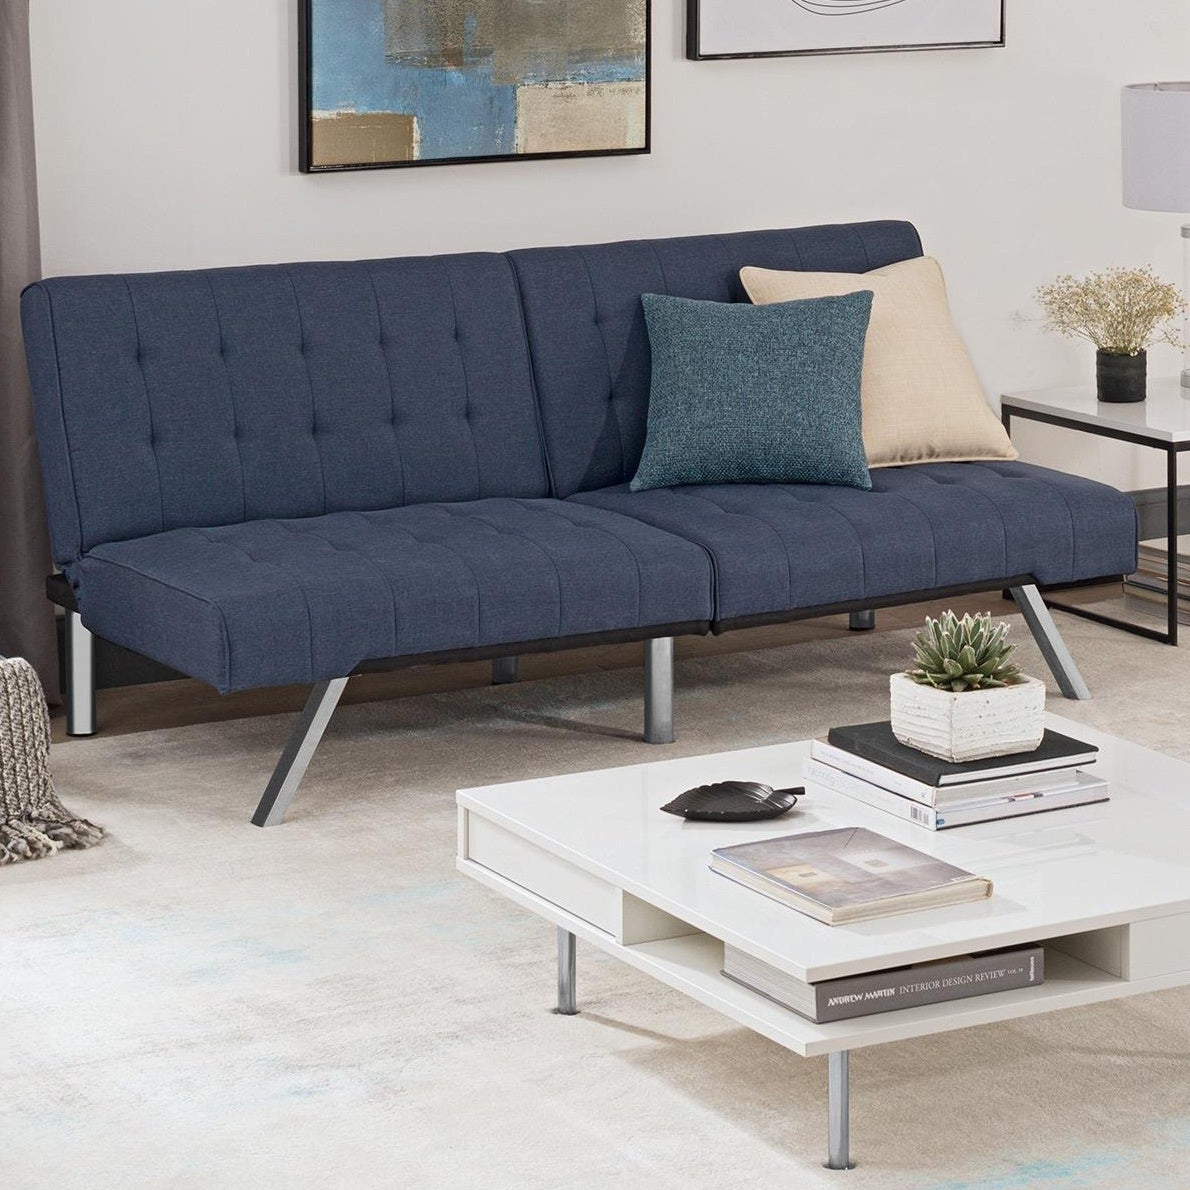 Buy Blue Modern Contemporary Sofas Couches Online At